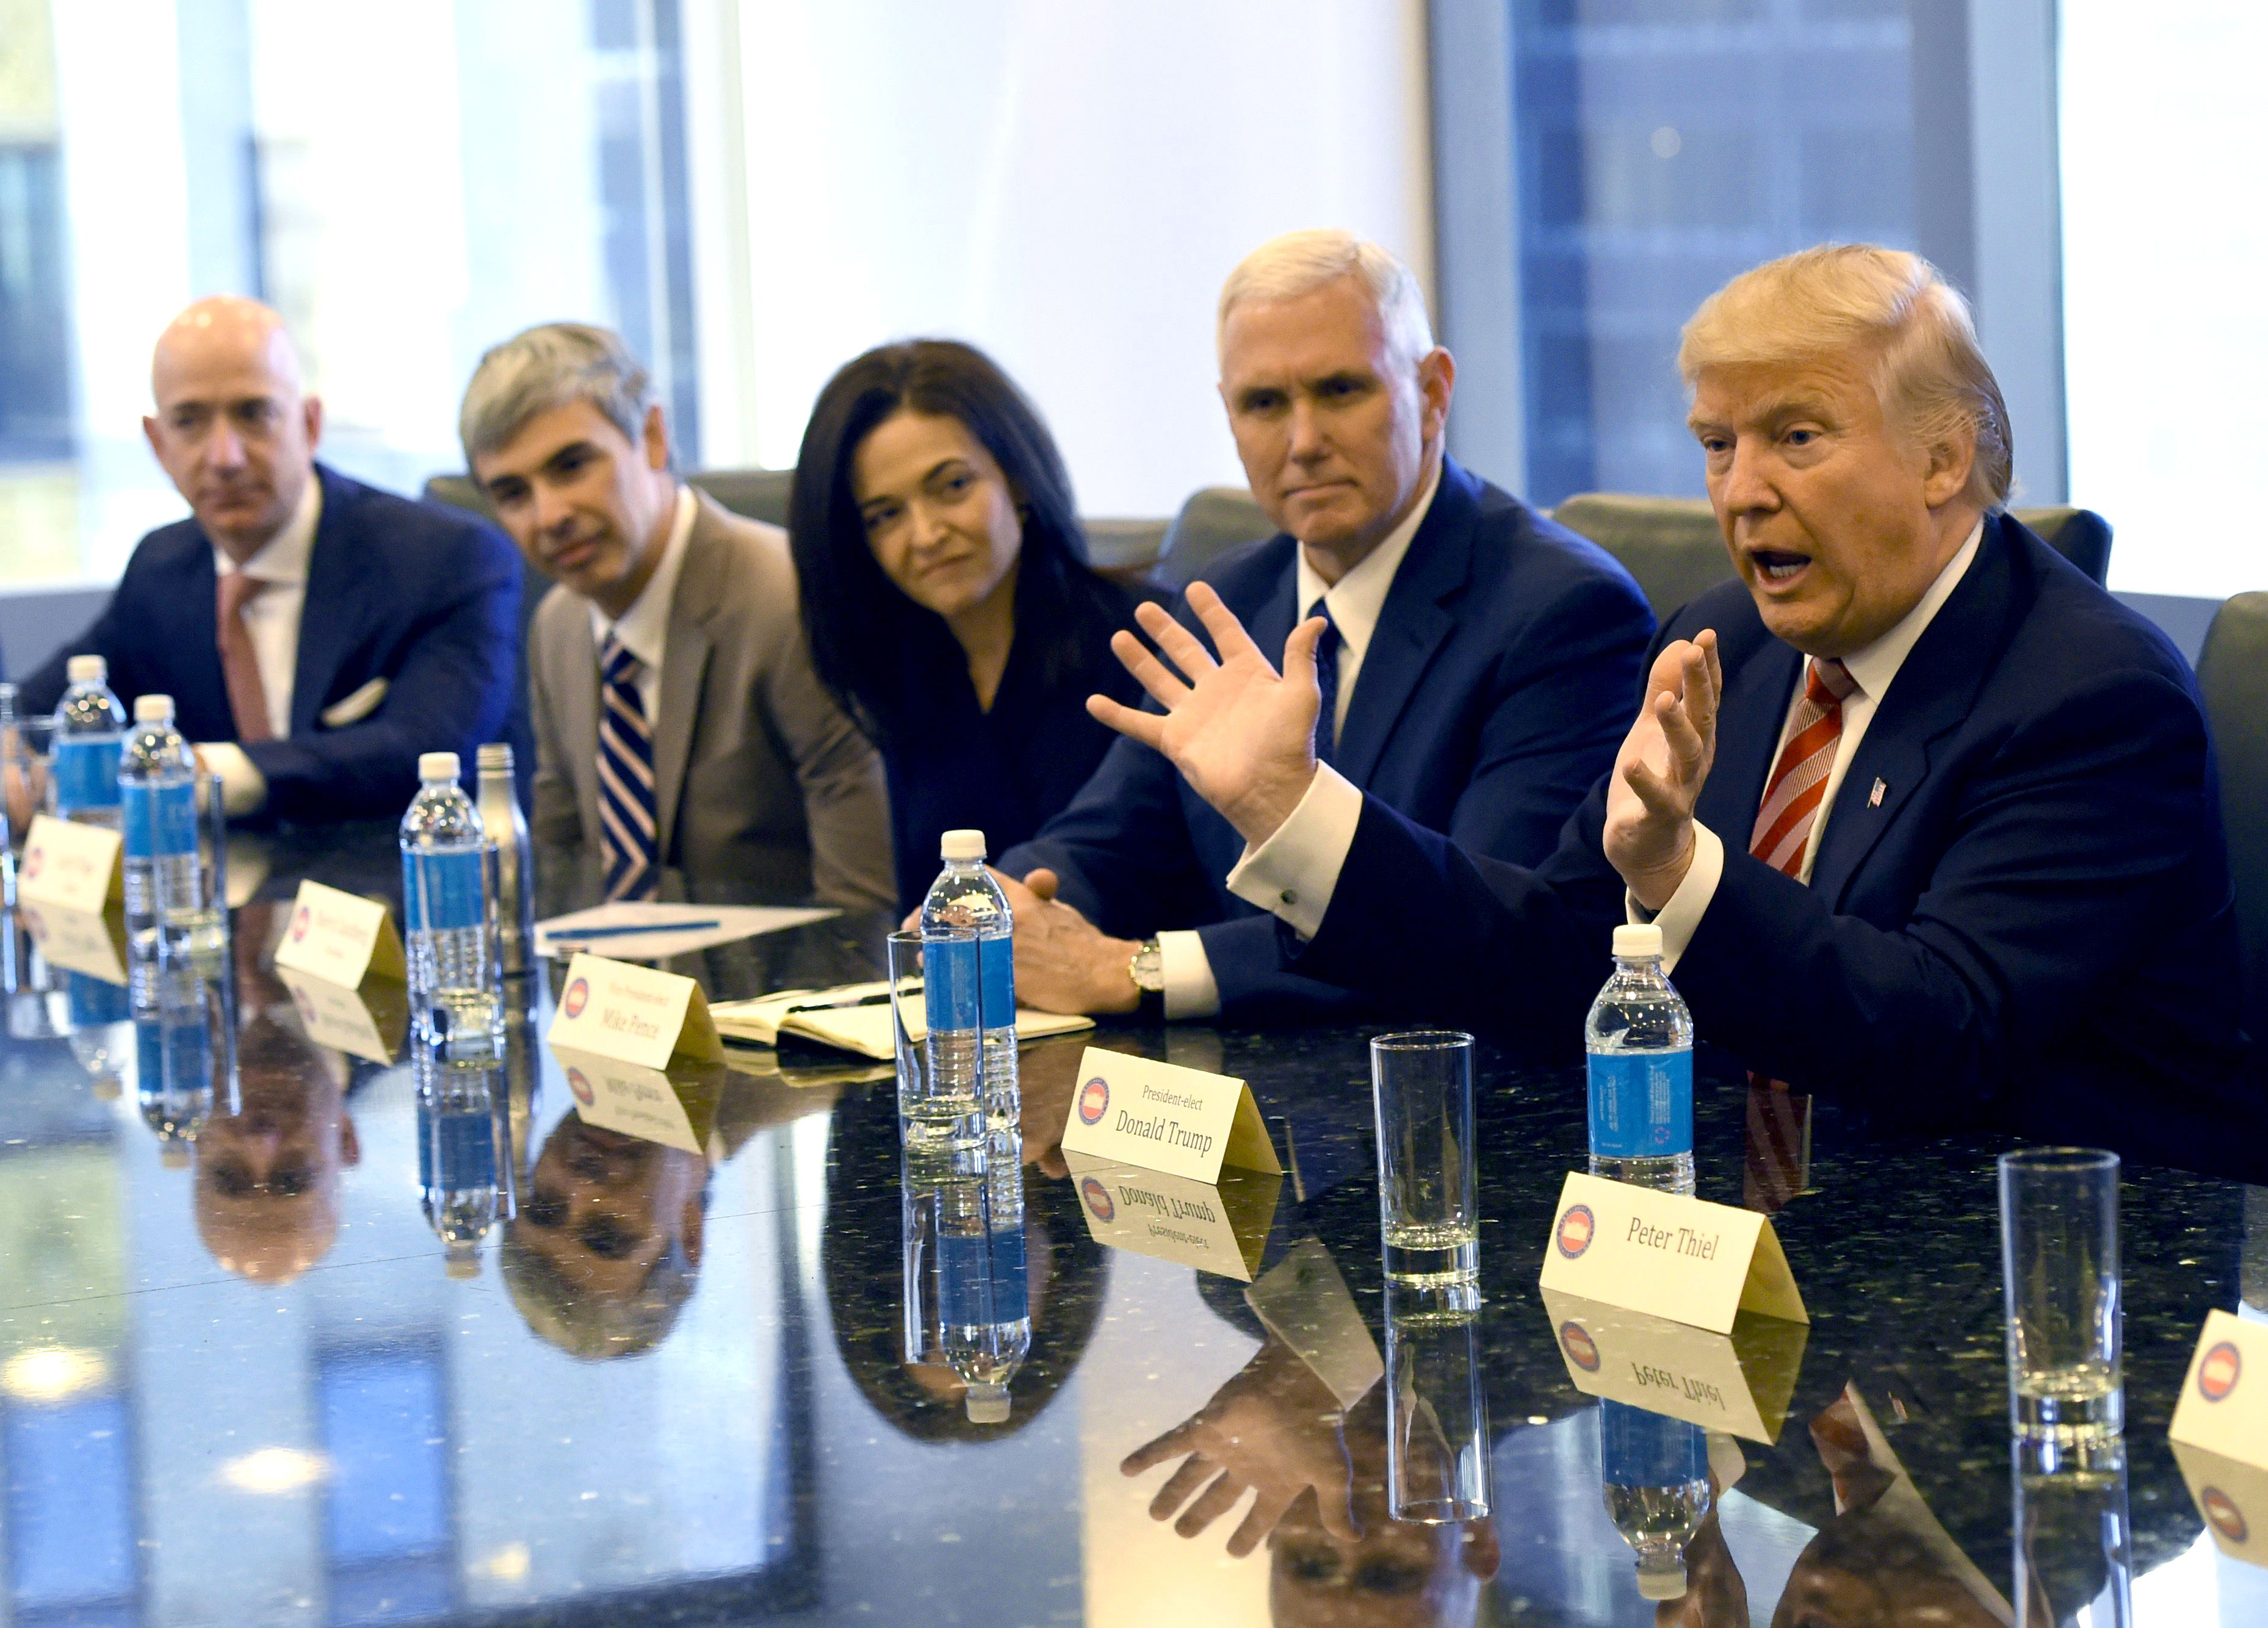 Amazon's chief Jeff Bezos, far left, at a meeting with President-elect Donald Trump at Trump Tower in late 2016.